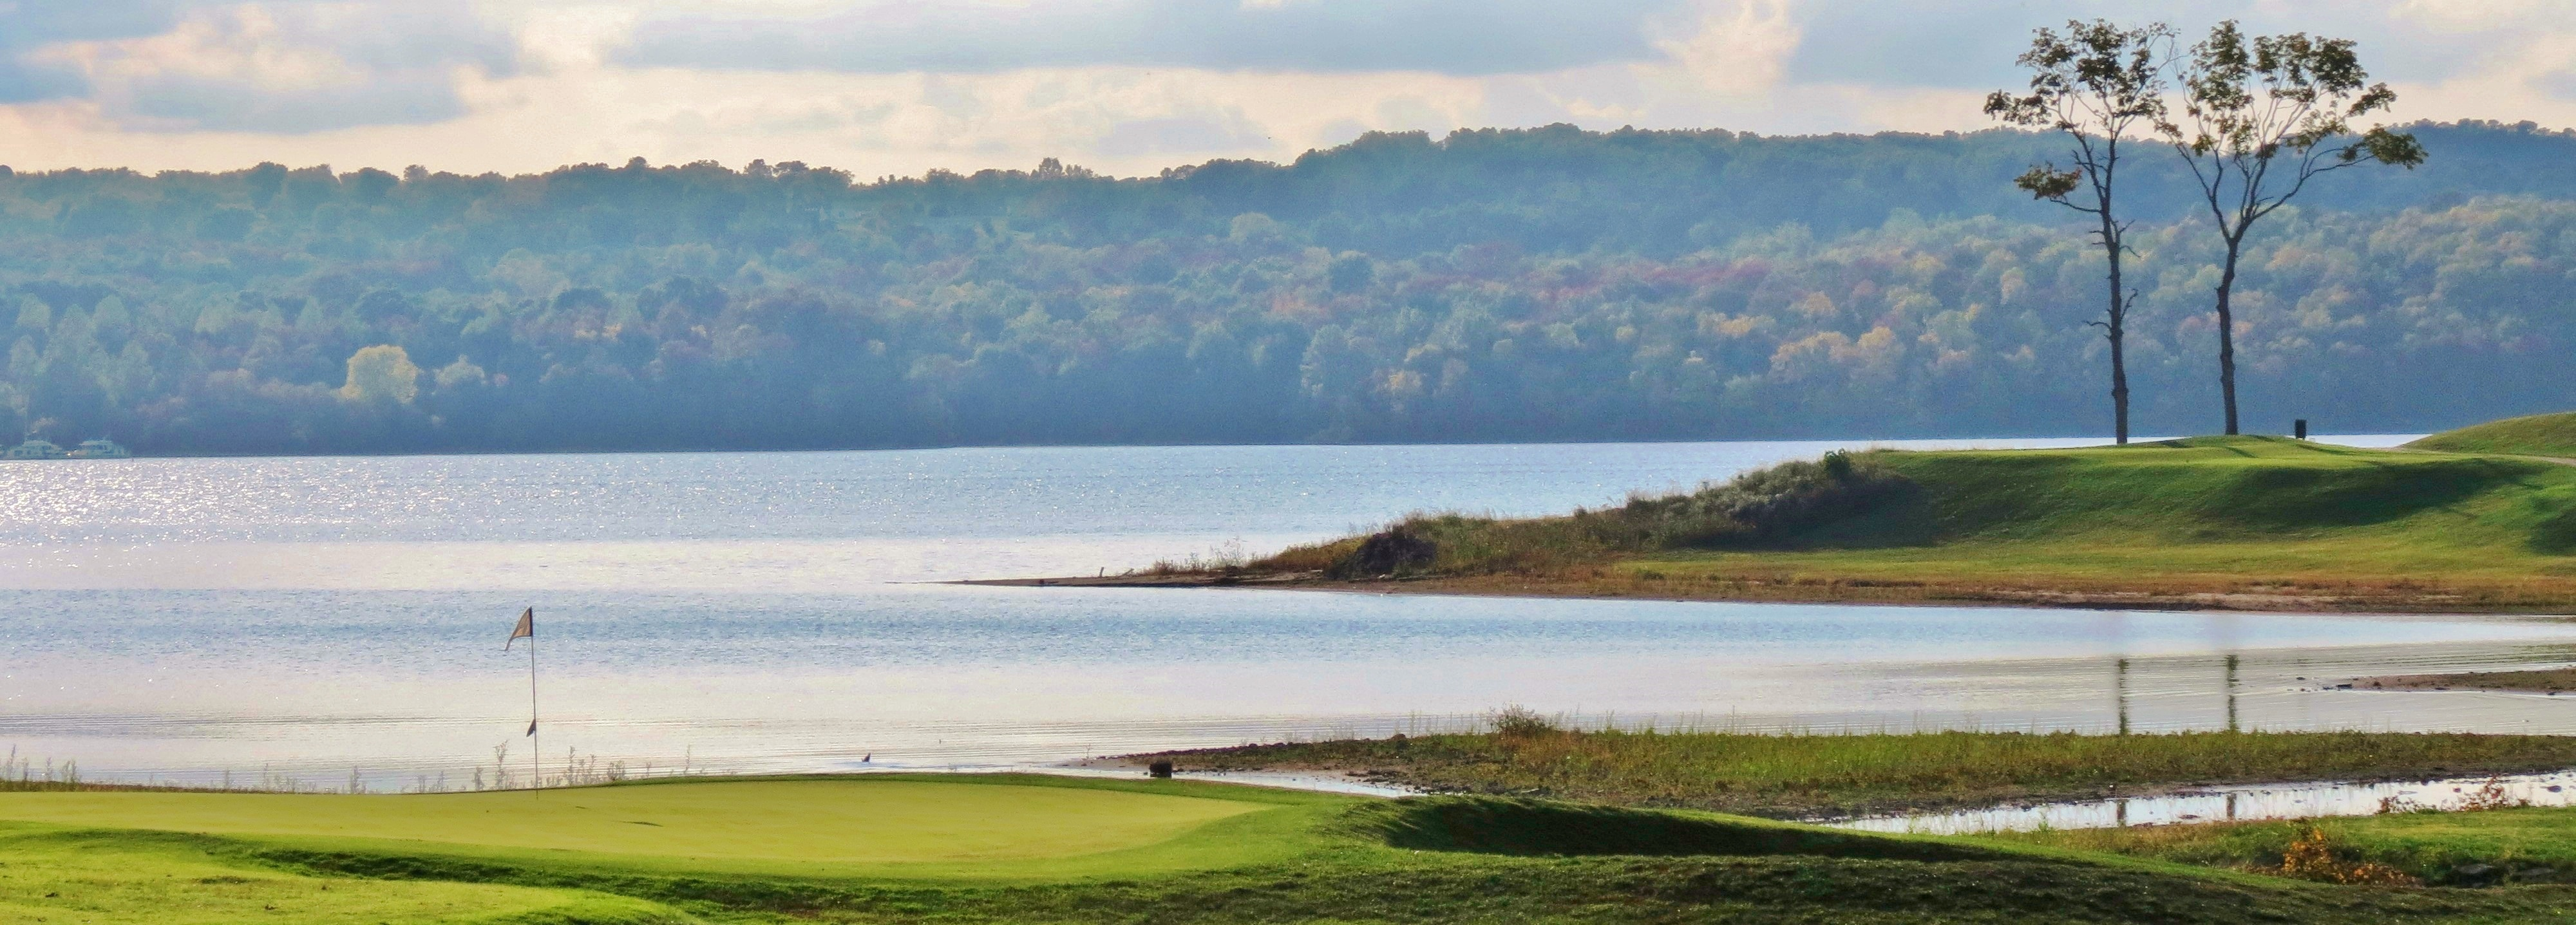 Sagamore Resort Ownership | Kent's Harbor, Inc